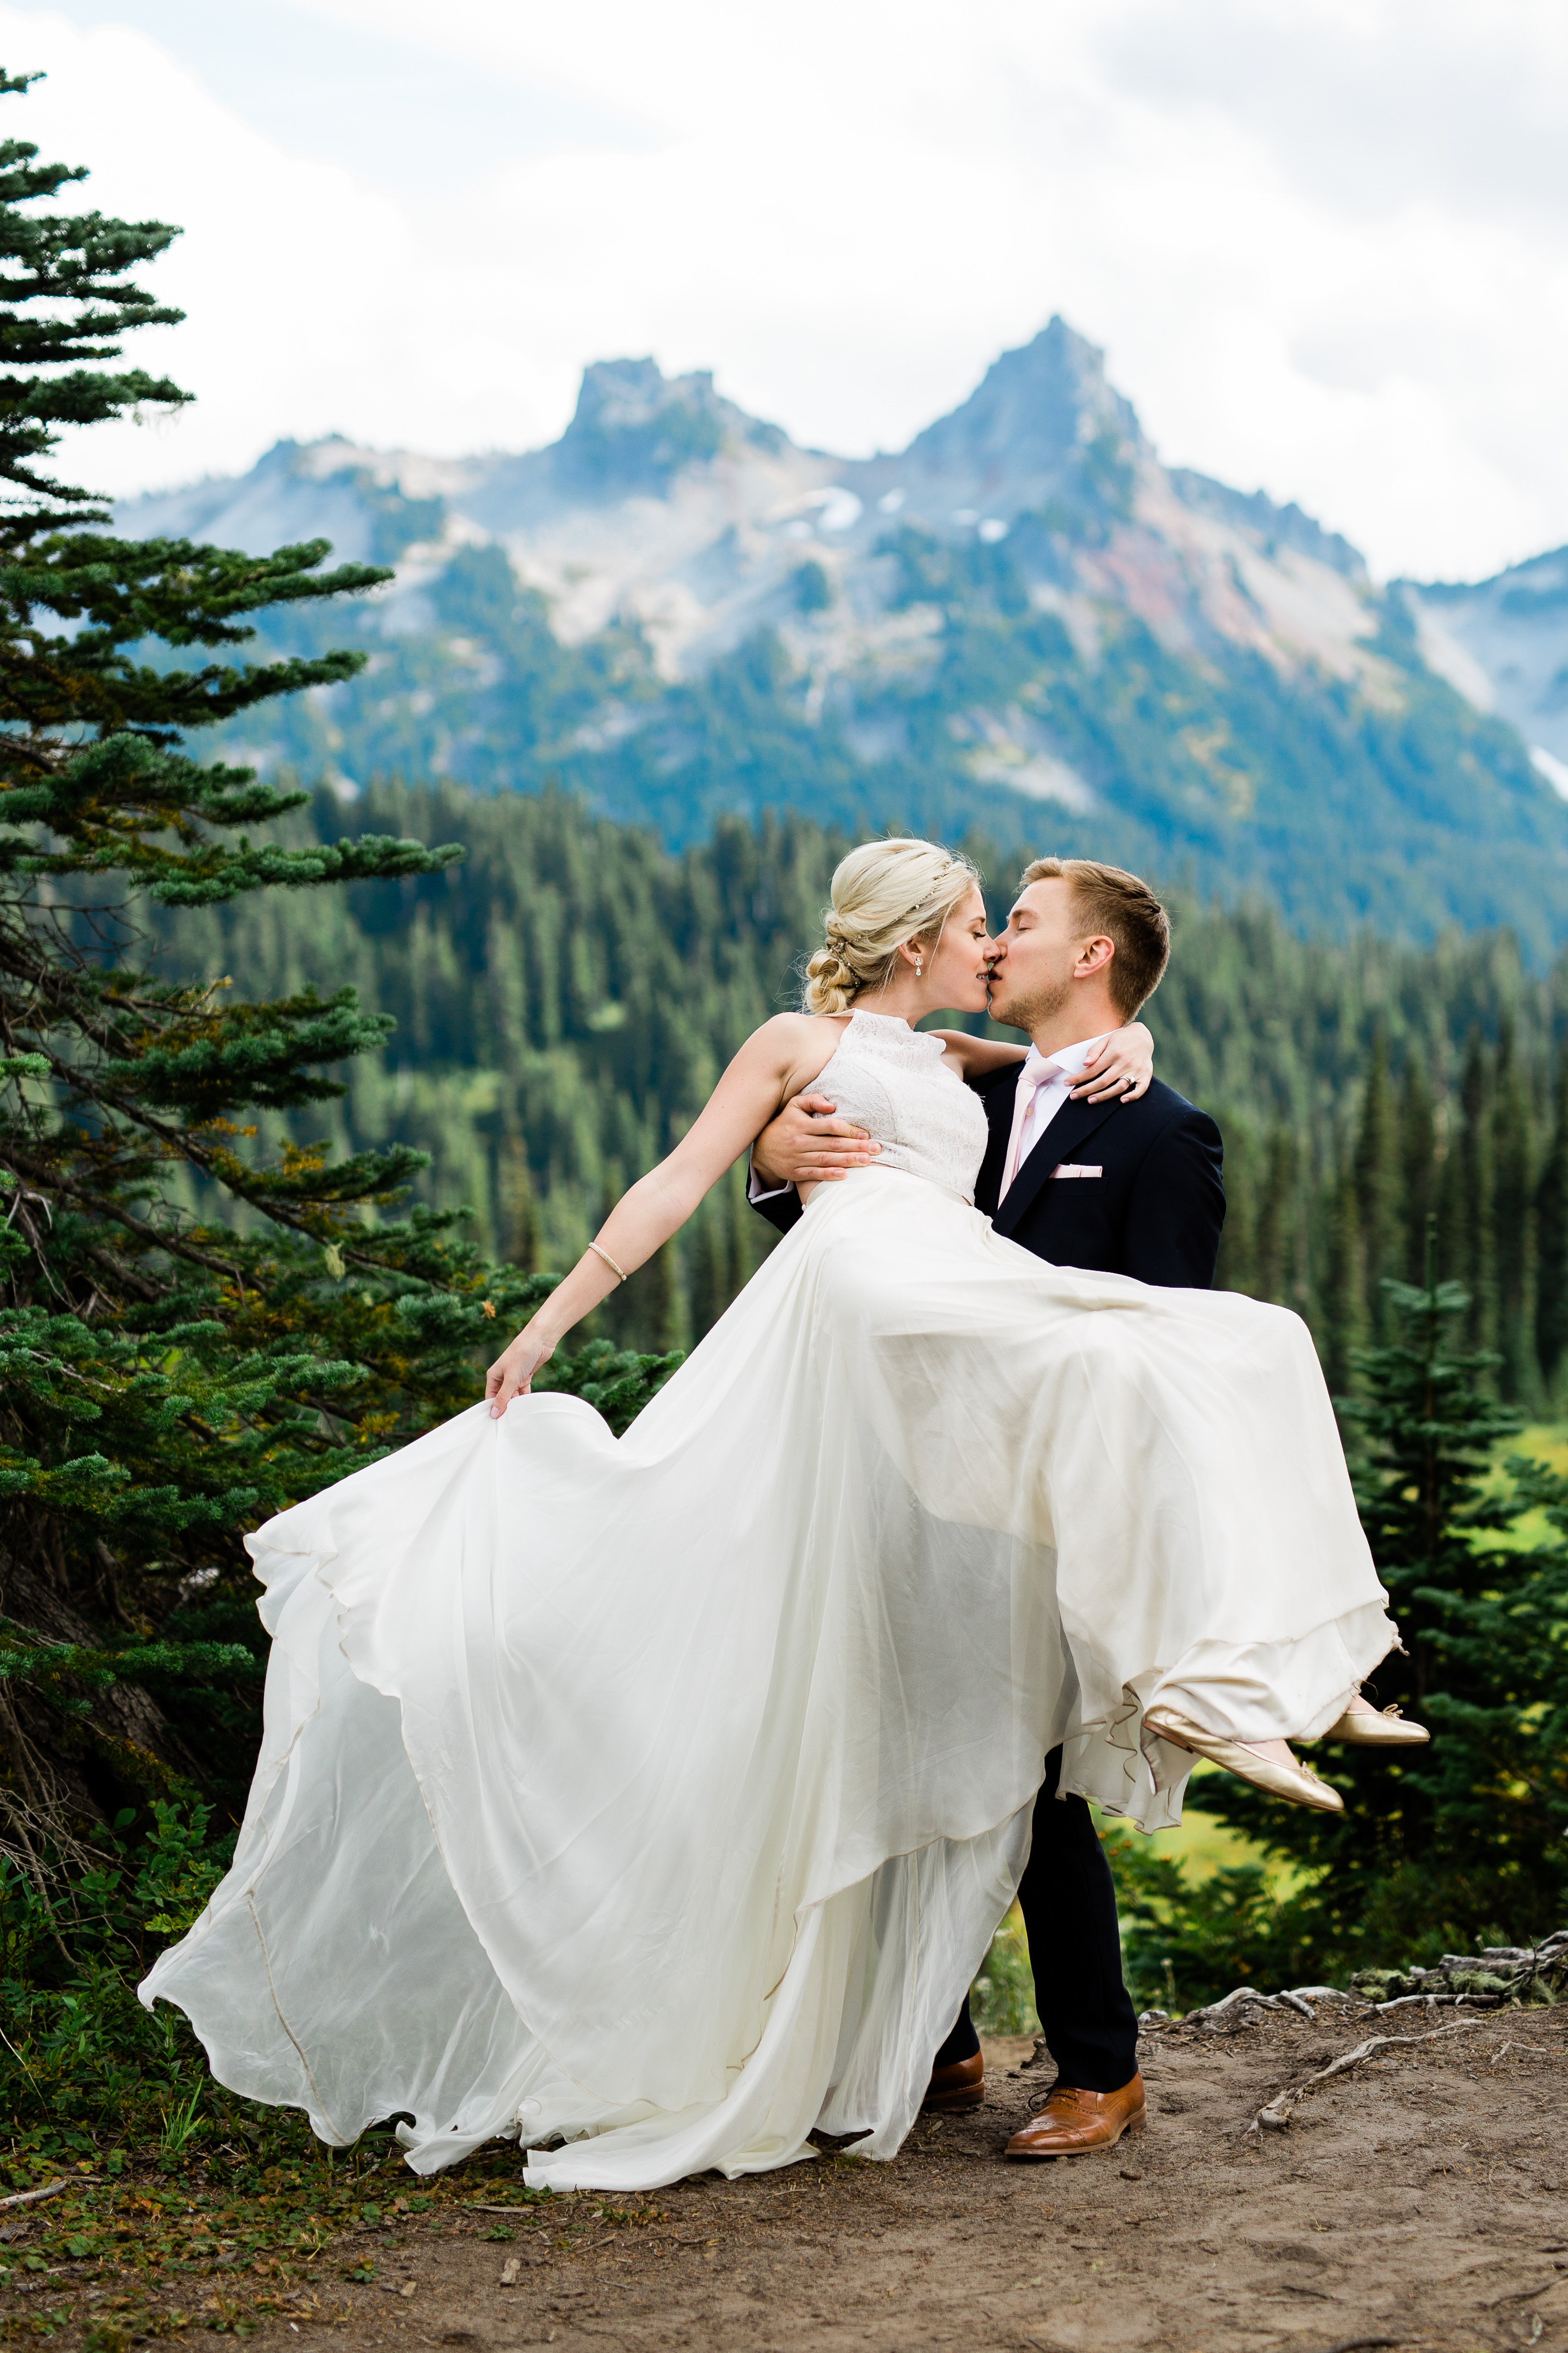 Romantic couple portrait with NW moutain background  by Cameron Zegers Photography